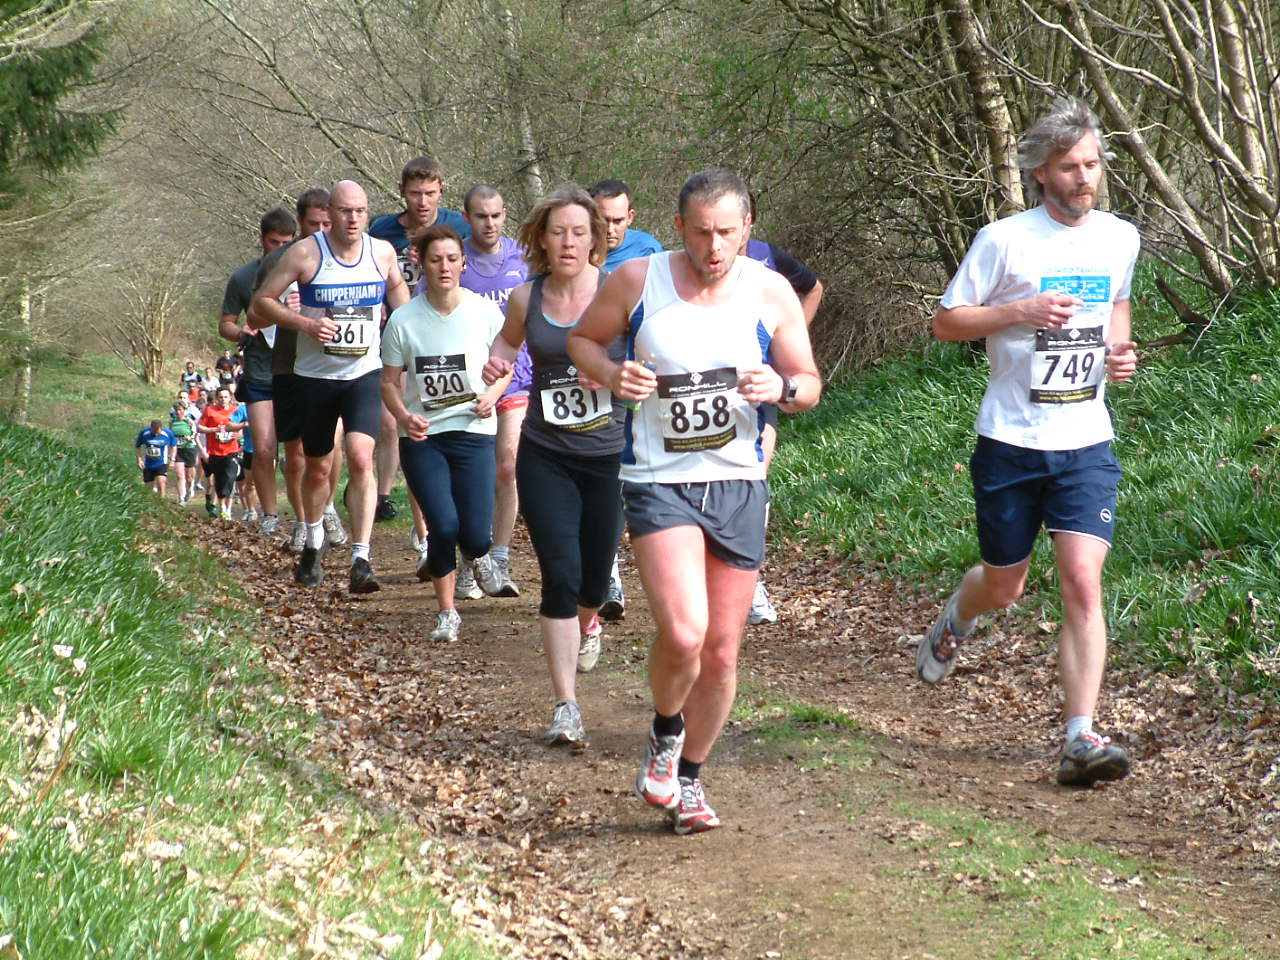 Rotary Club of Calne Bowood 10km Charity Run